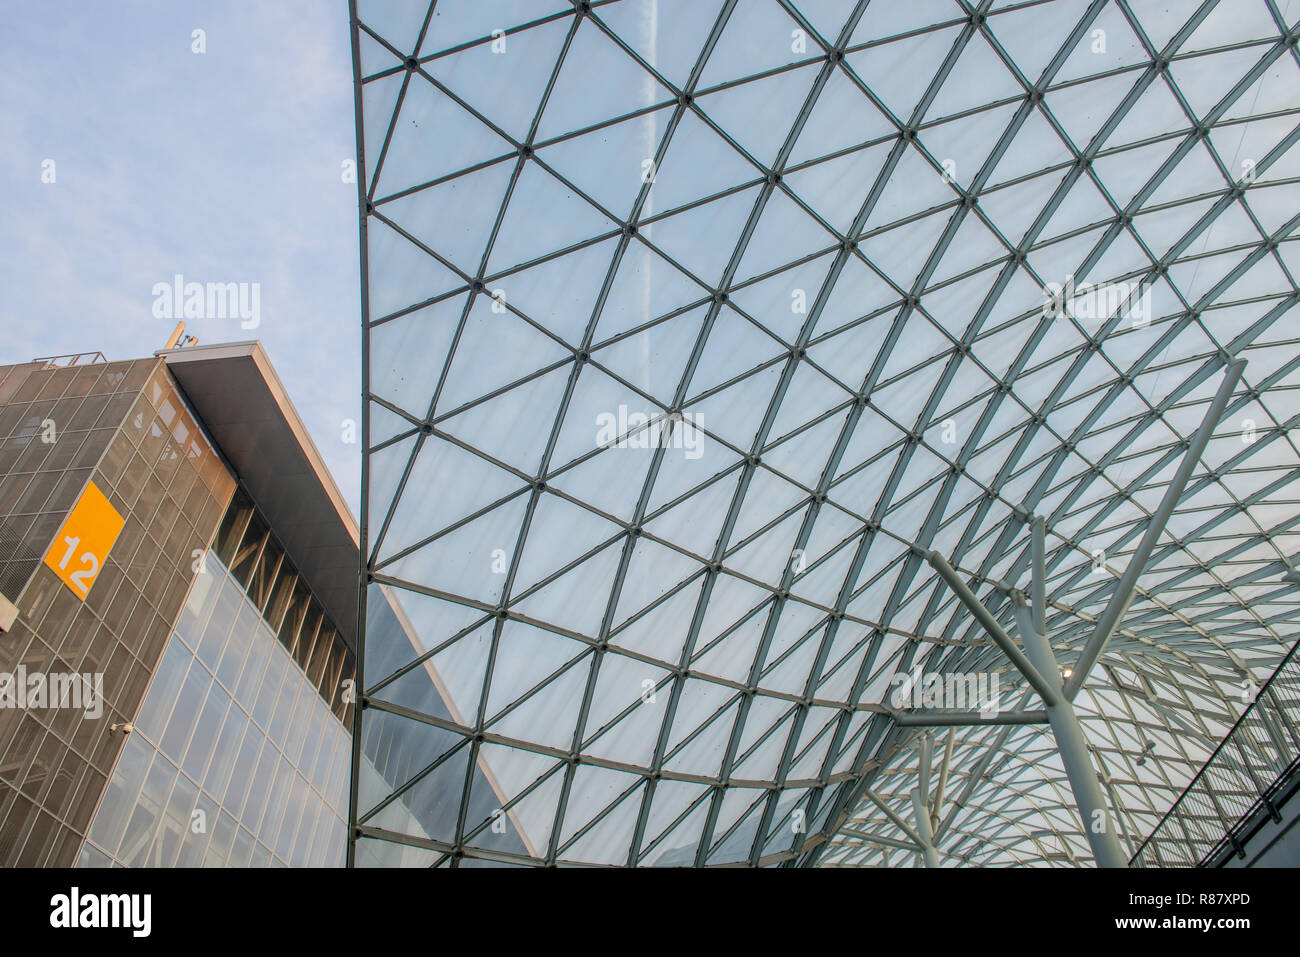 Rho Milano Italy 2 December 2018: Fiera Milano Rho entrance. Fiera Milano Rho is an important international trade fair and conference on visual commun - Stock Image